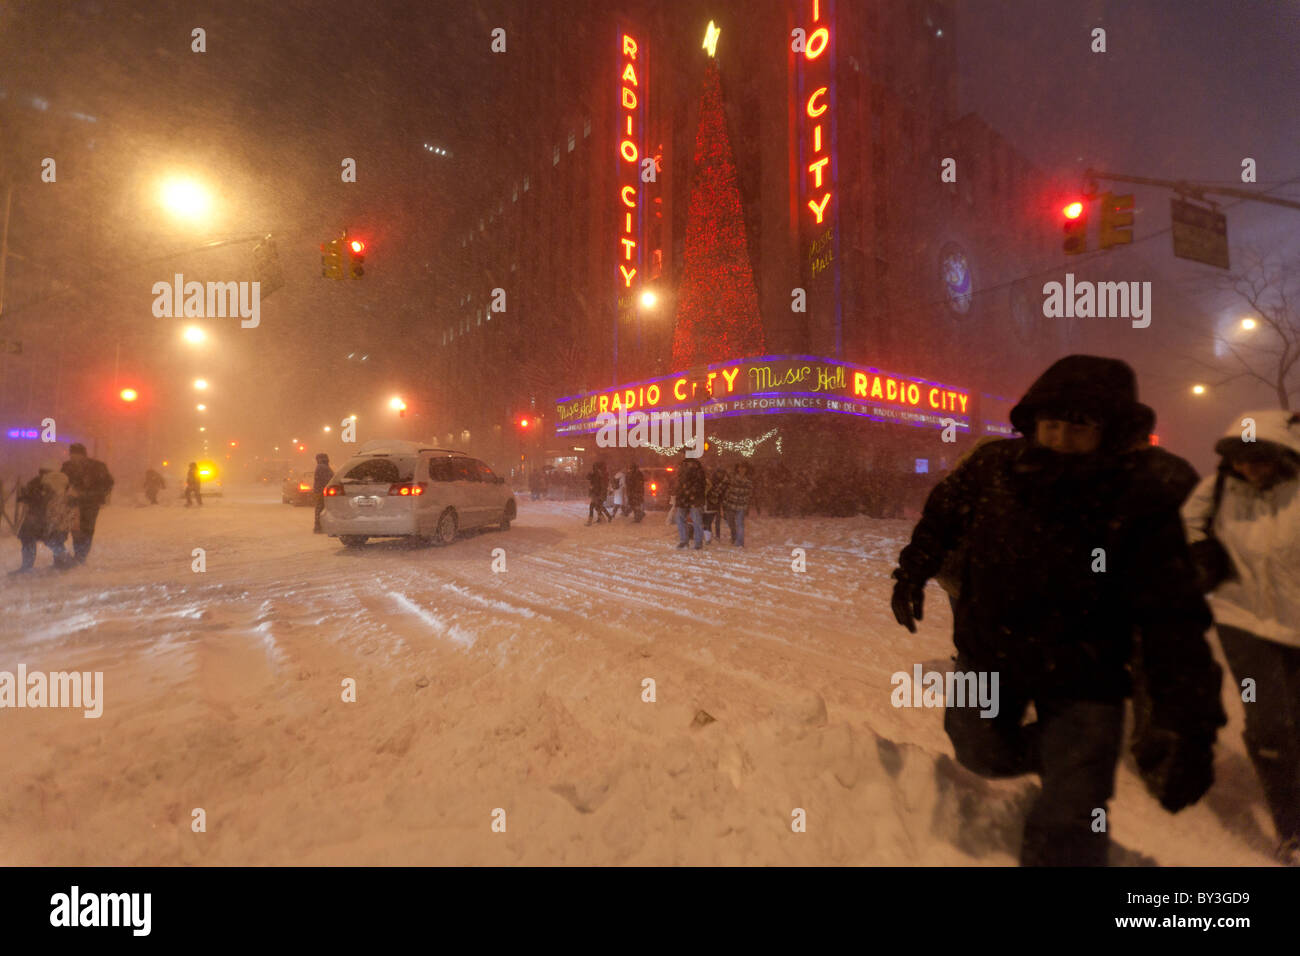 People leaving Radio city music hall Christmas show in heavy snowfall in Christmas 2010 Stock Photo